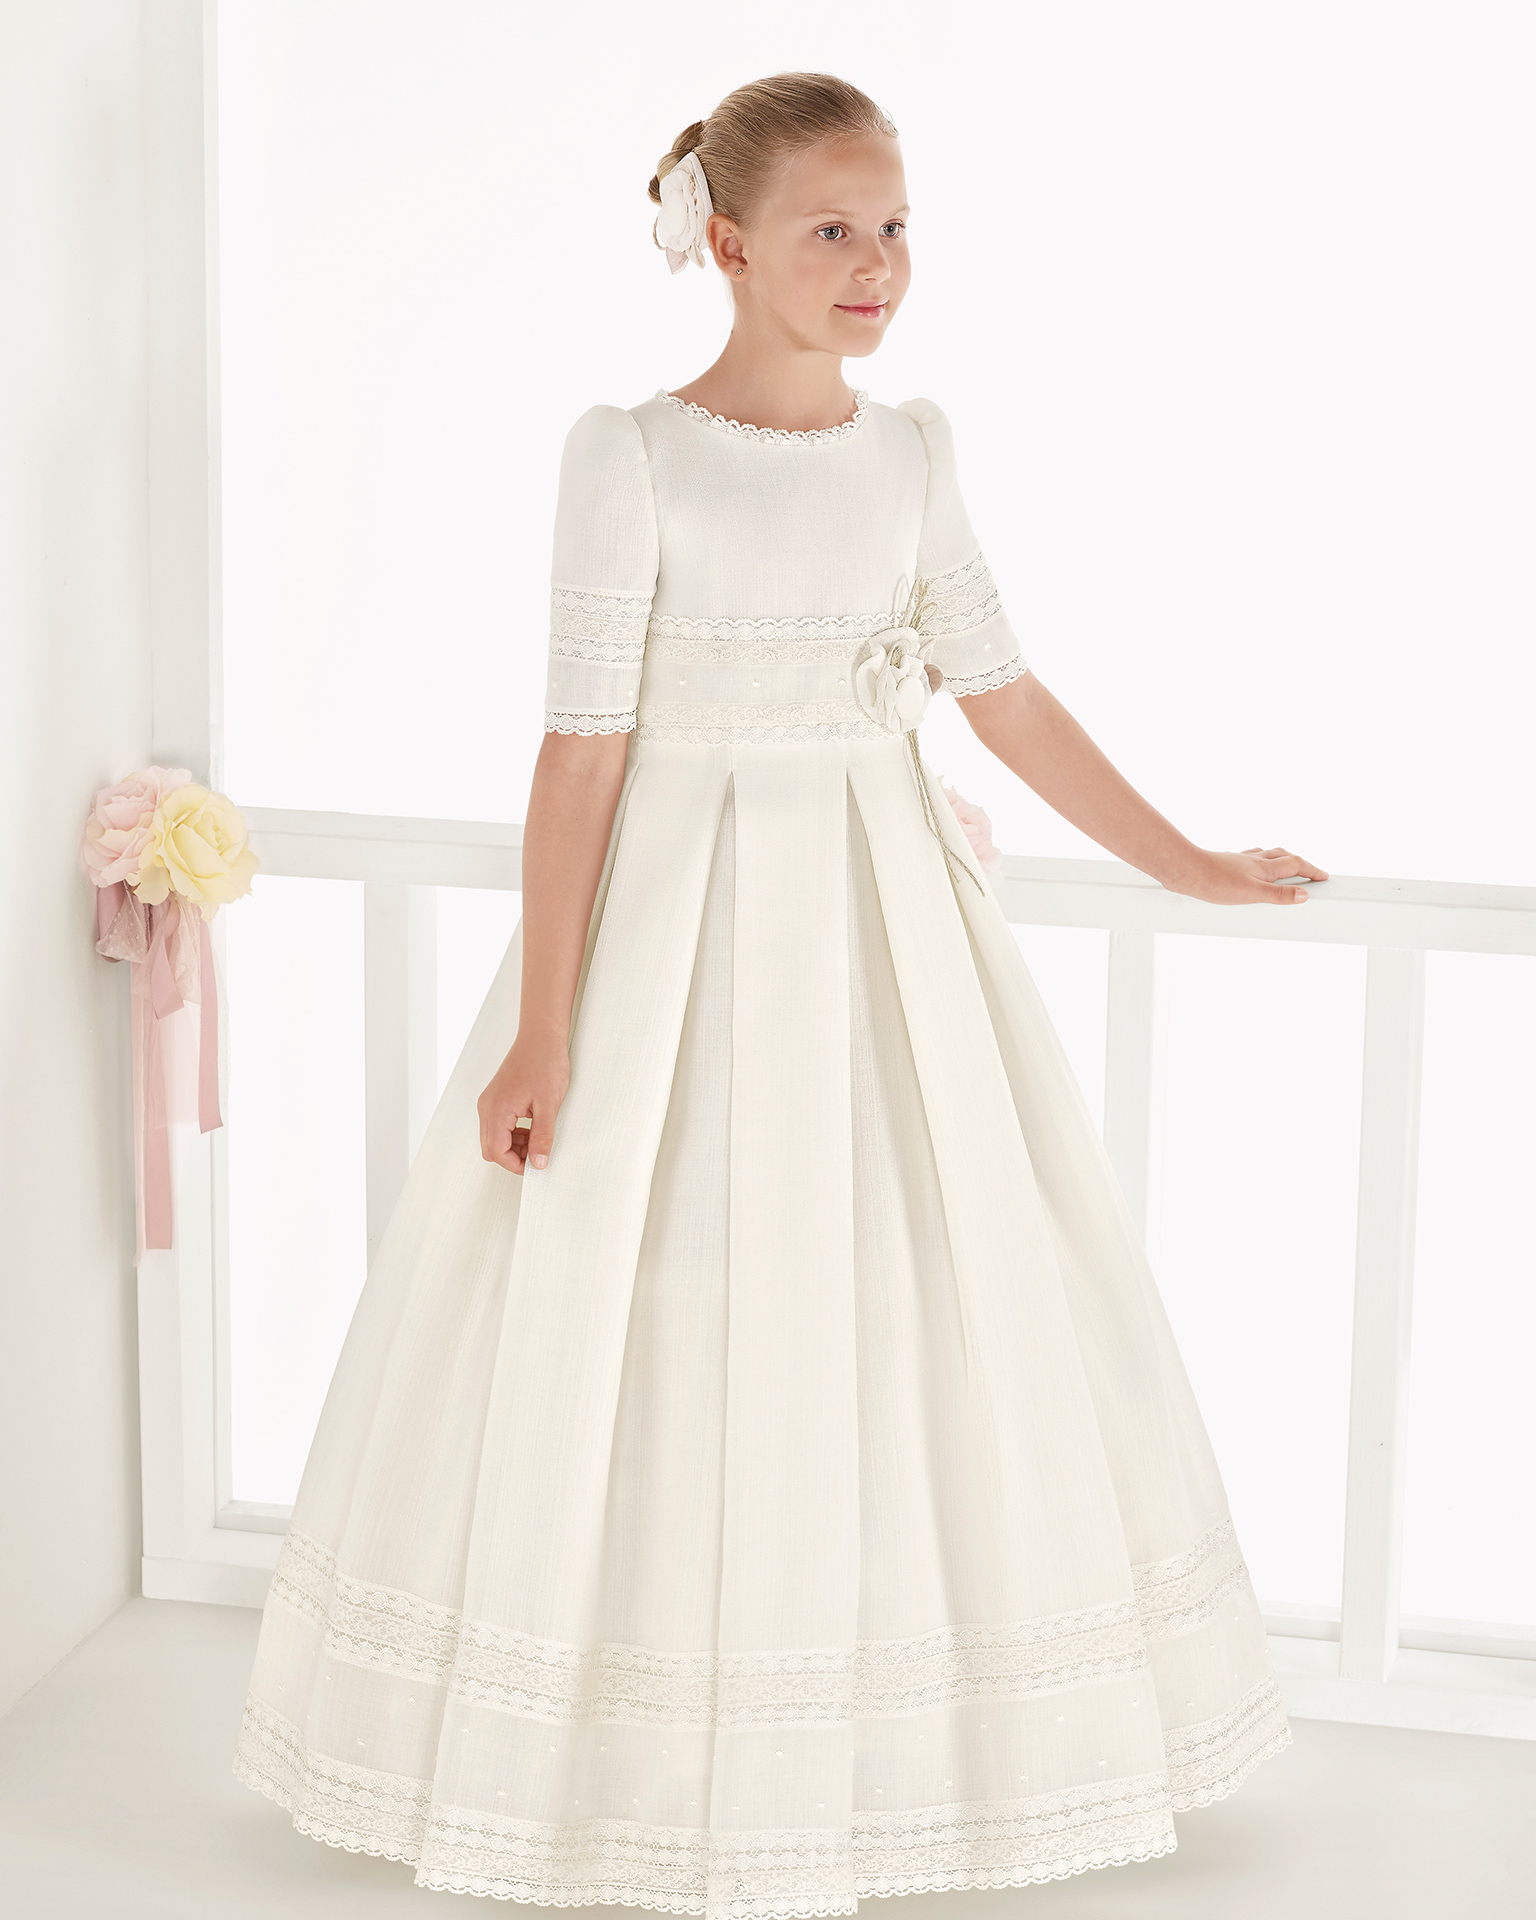 Classic rustic basketweave First Communion dress with empire waist, in ivory. 2018 AIRE COMUNION Collection.